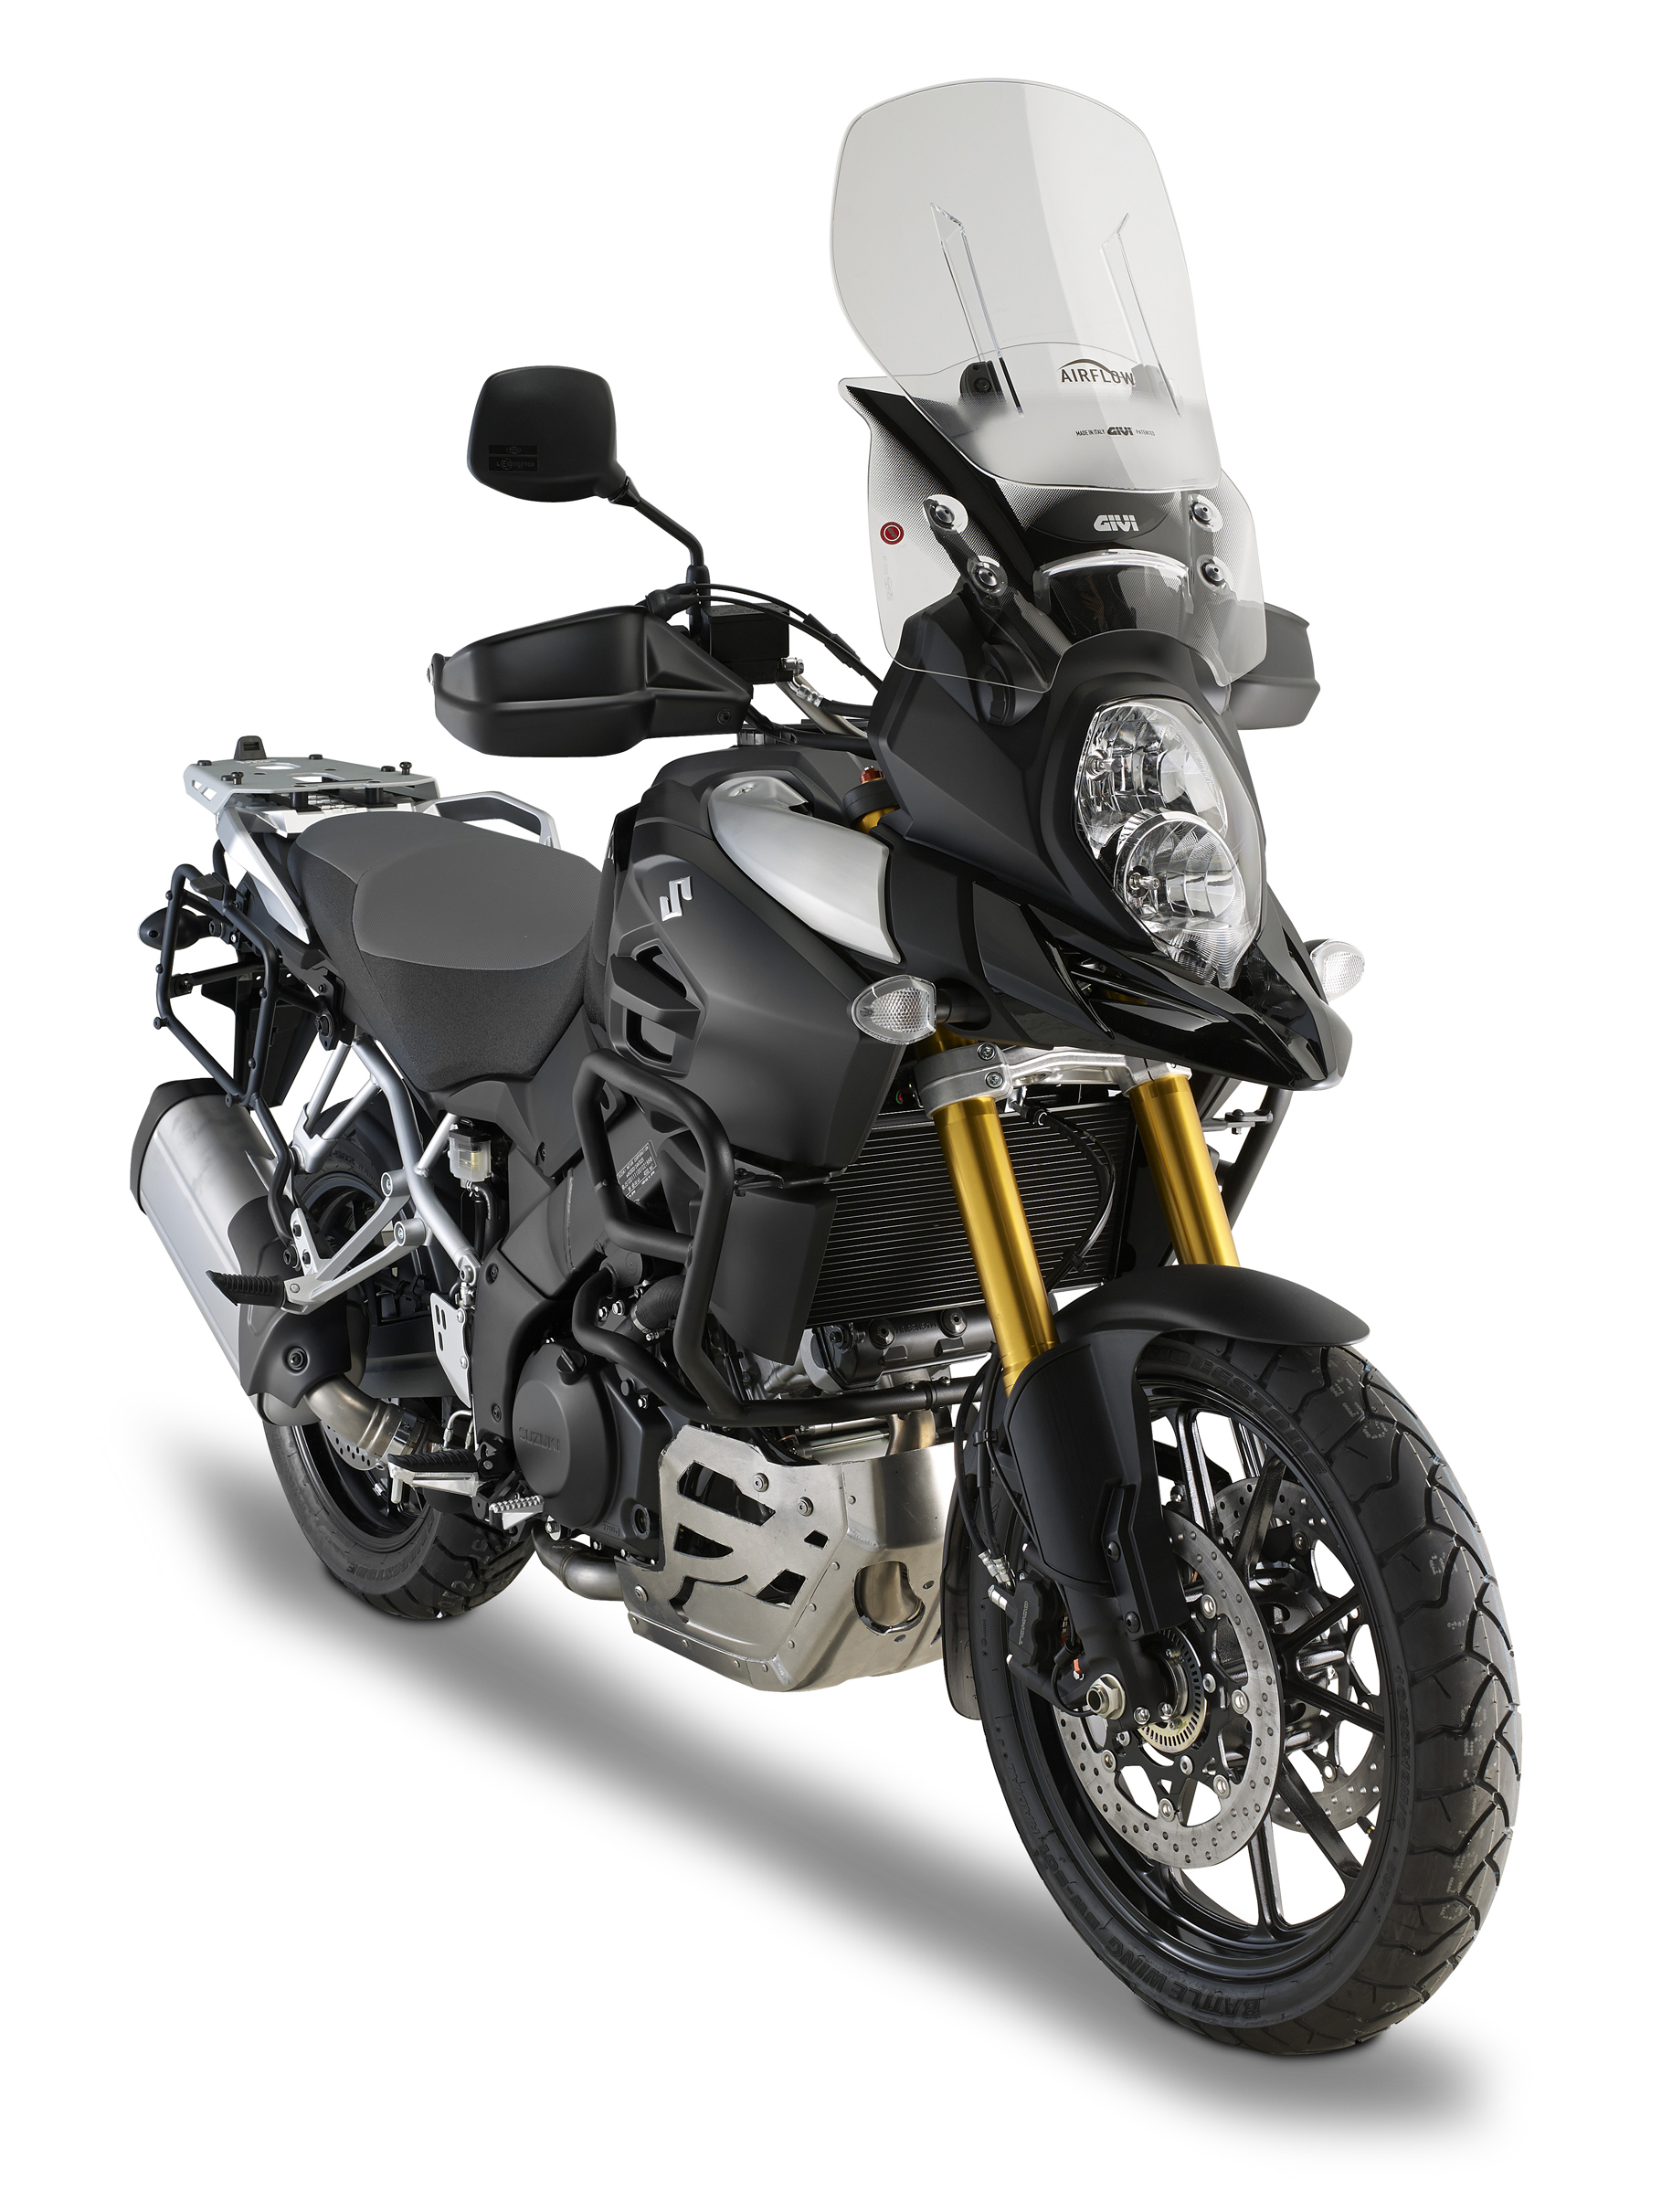 givi release photos of v strom 1000 2014 accessories a pair of stroms. Black Bedroom Furniture Sets. Home Design Ideas